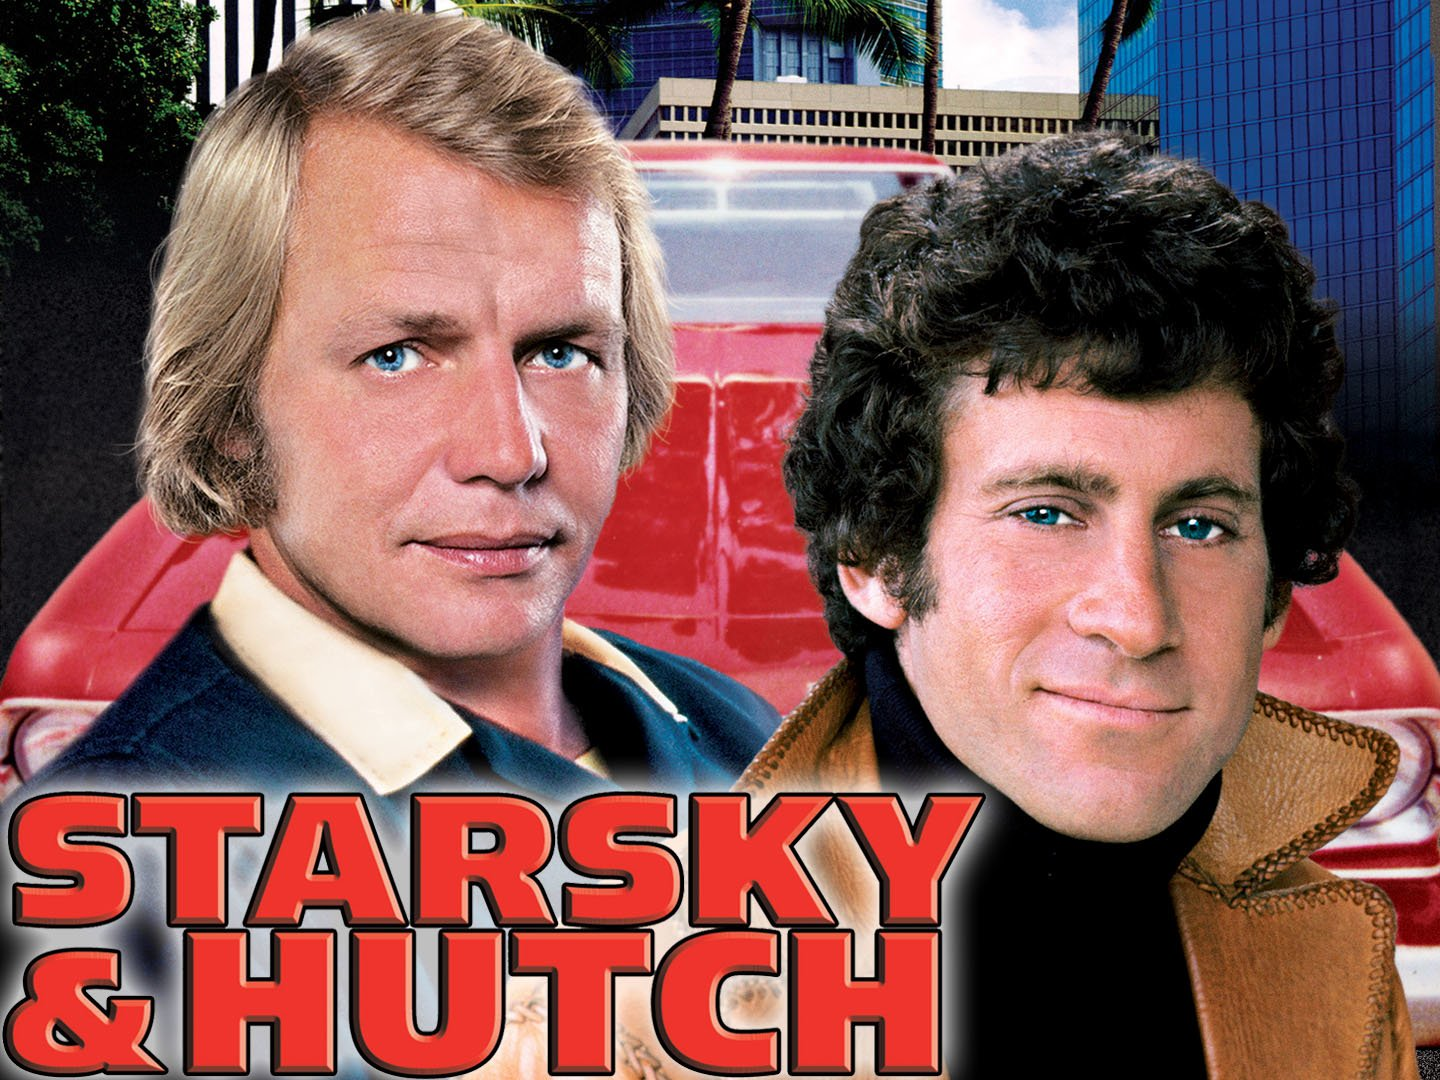 starsky and hutch wallpaper and background 1440x1080 id 435009. Black Bedroom Furniture Sets. Home Design Ideas